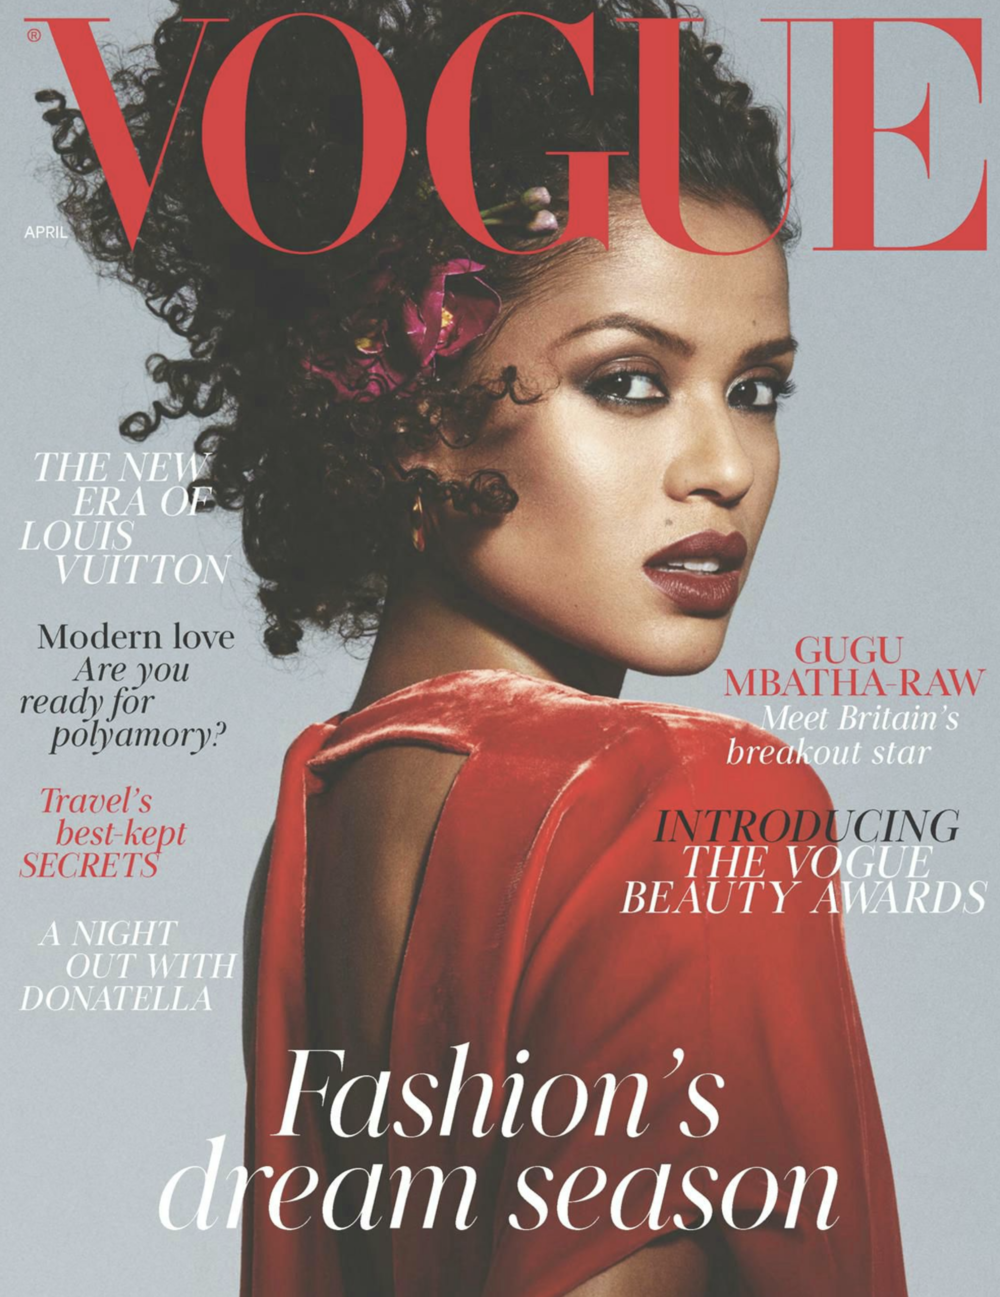 VOGUE April 2018 Cover.png